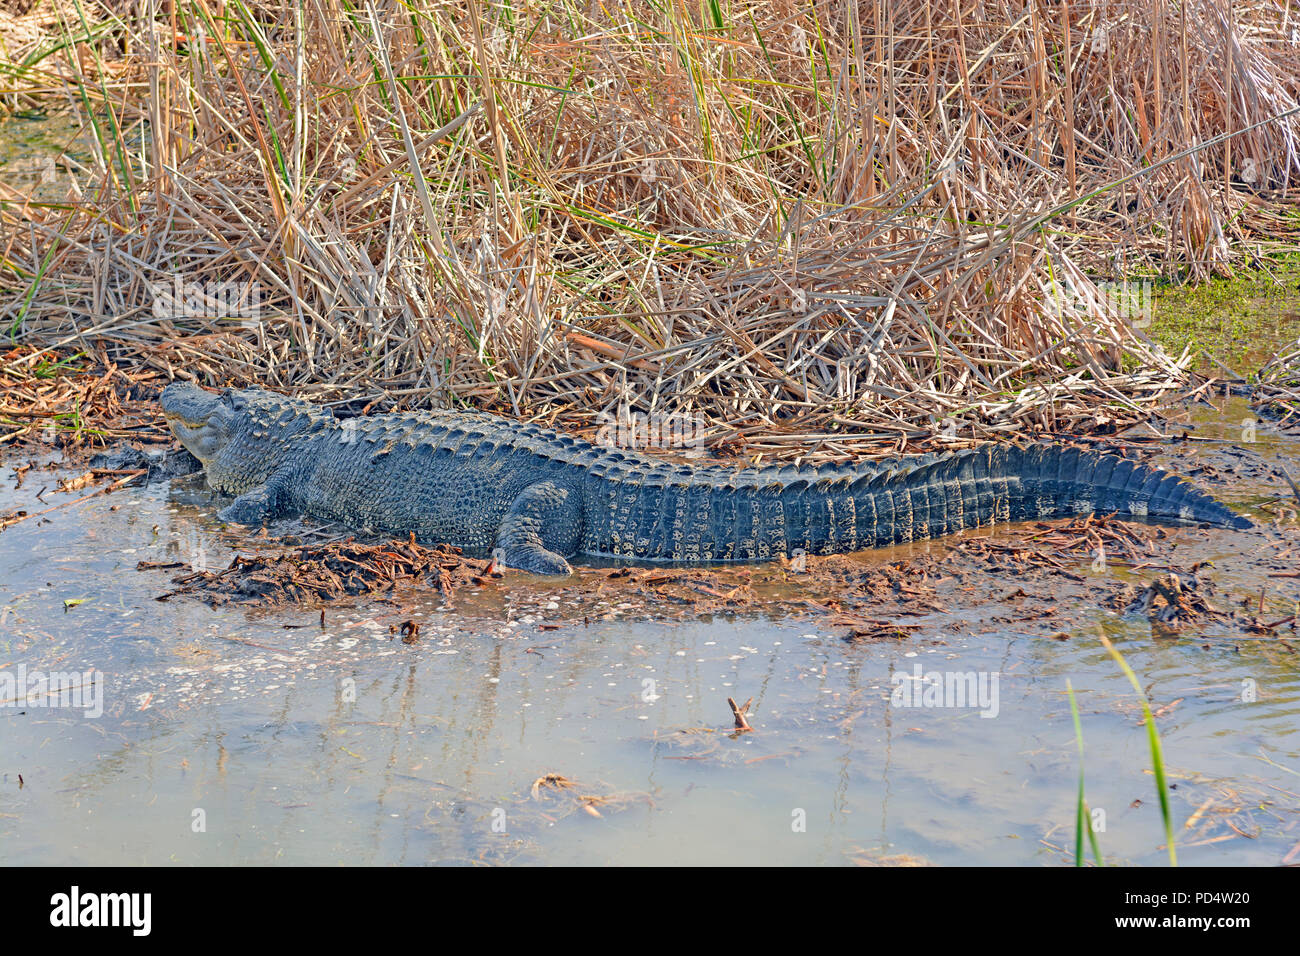 Side View of an American Alligator in a Pond near Port Aransas, Texas - Stock Image